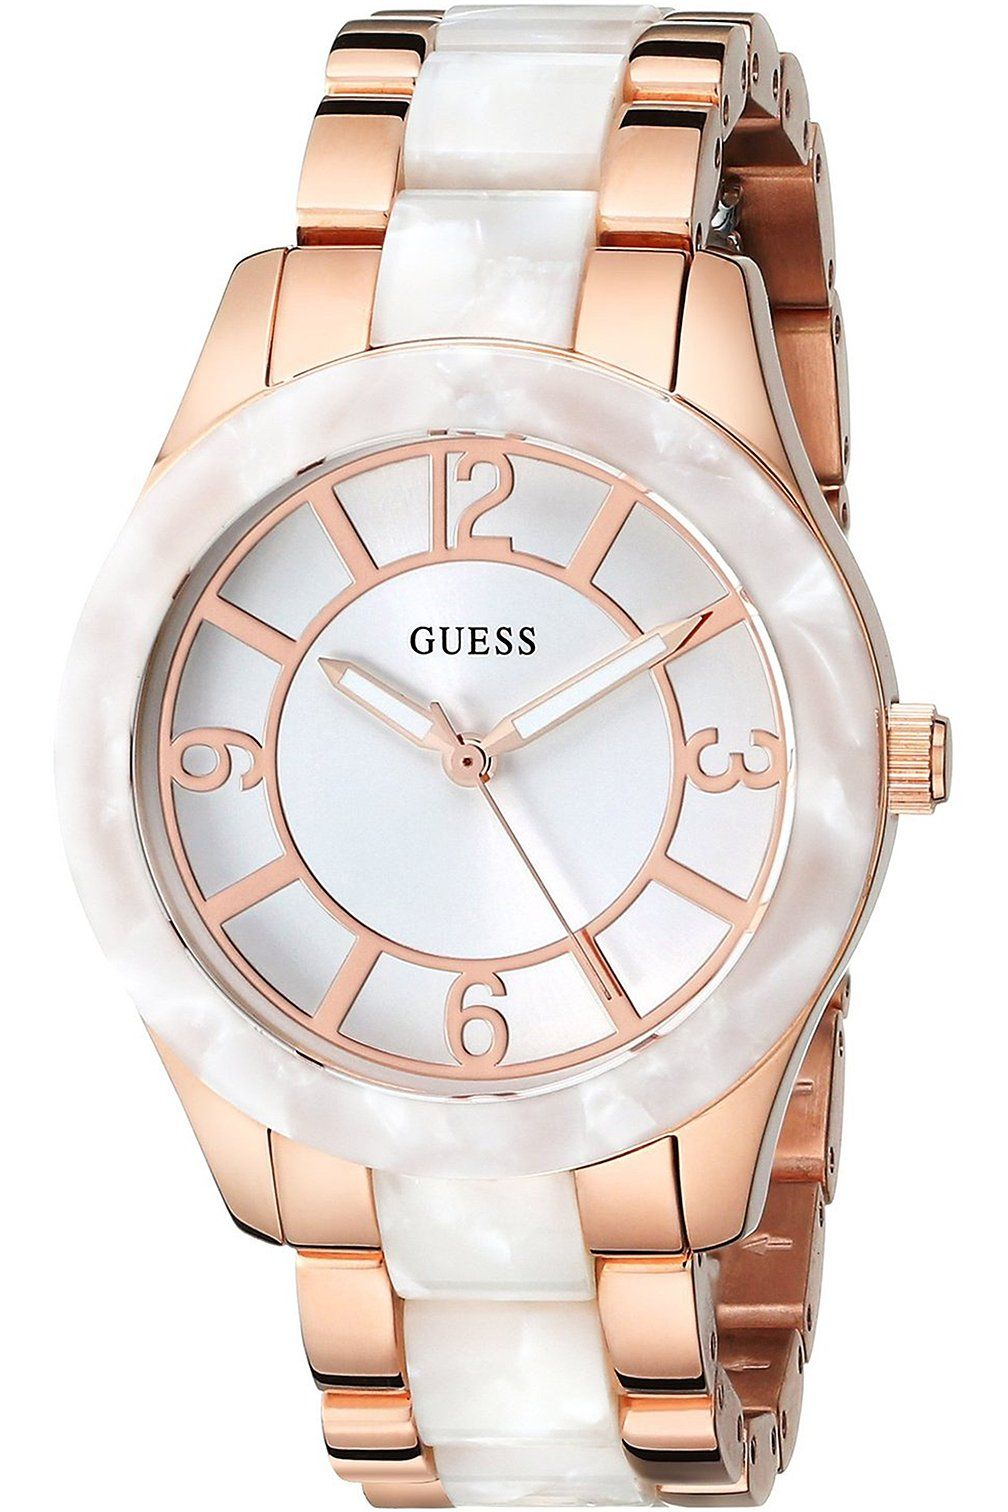 Guess W0074l2 Womens Stainless Steel Rose Gold Tone White Fossil Es3590 Stella Multifunction Watch Marbellized